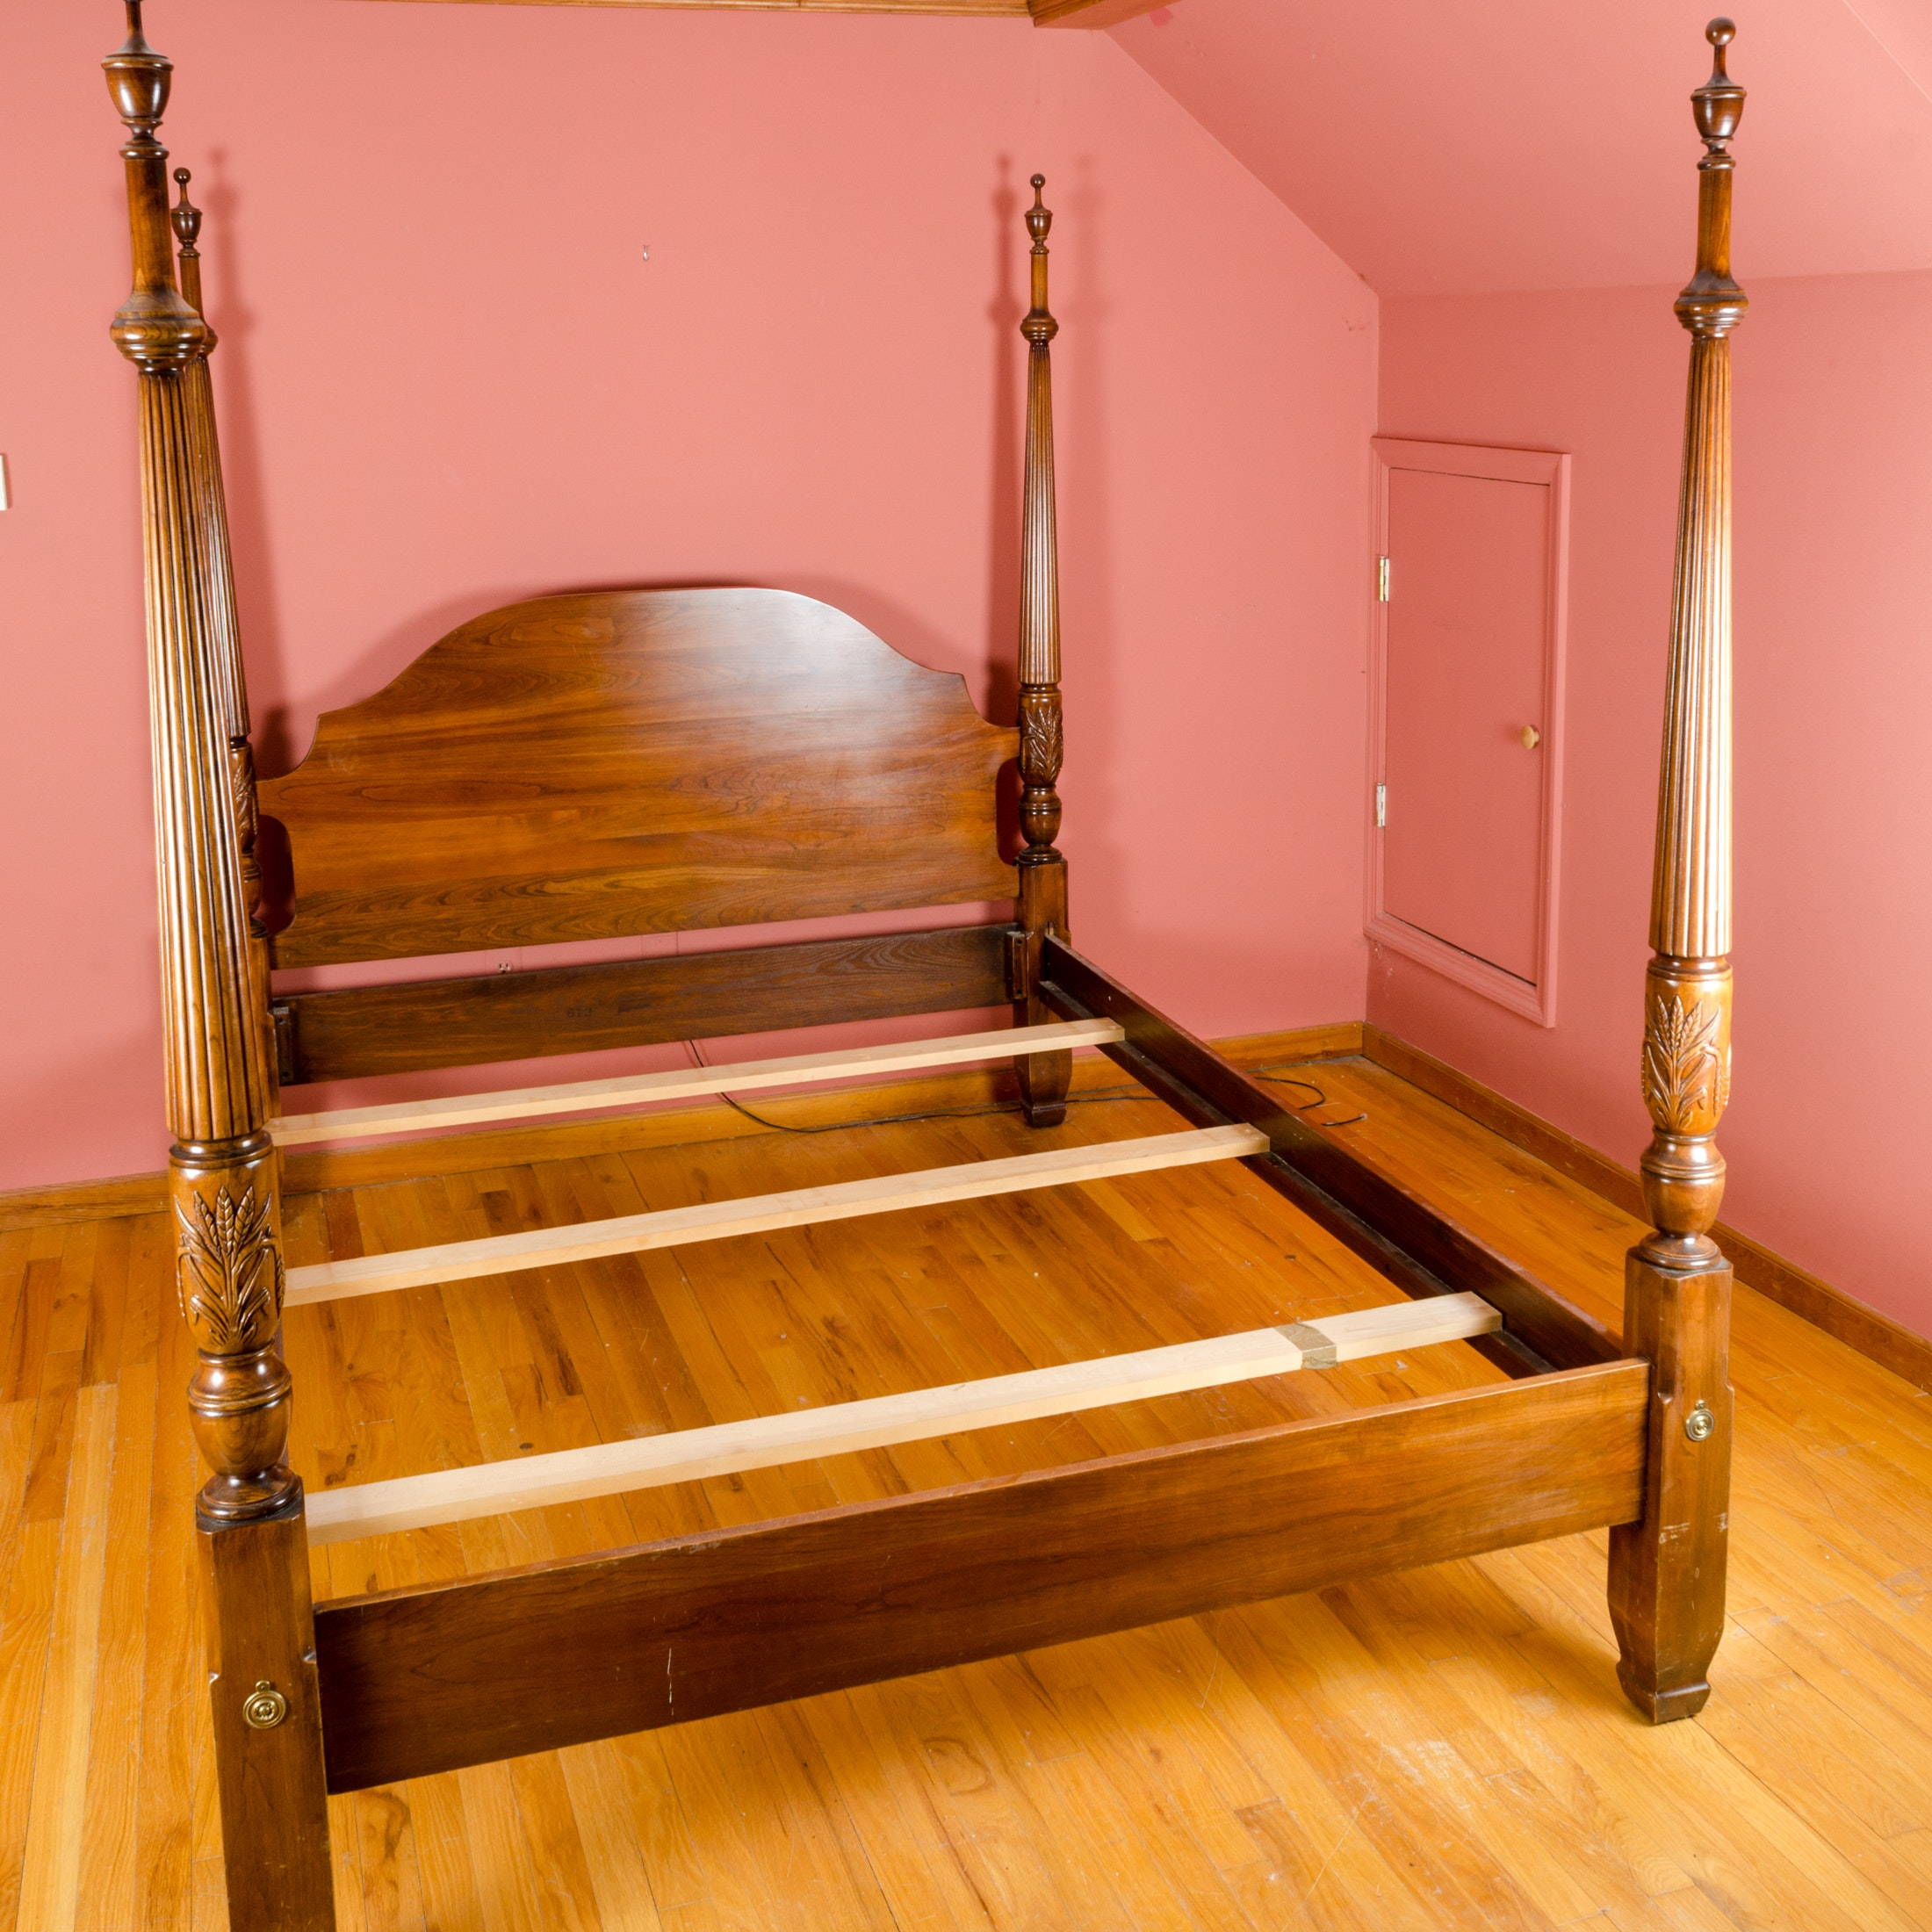 Charleston Style Four Poster Queen Size Rice Bed Frame